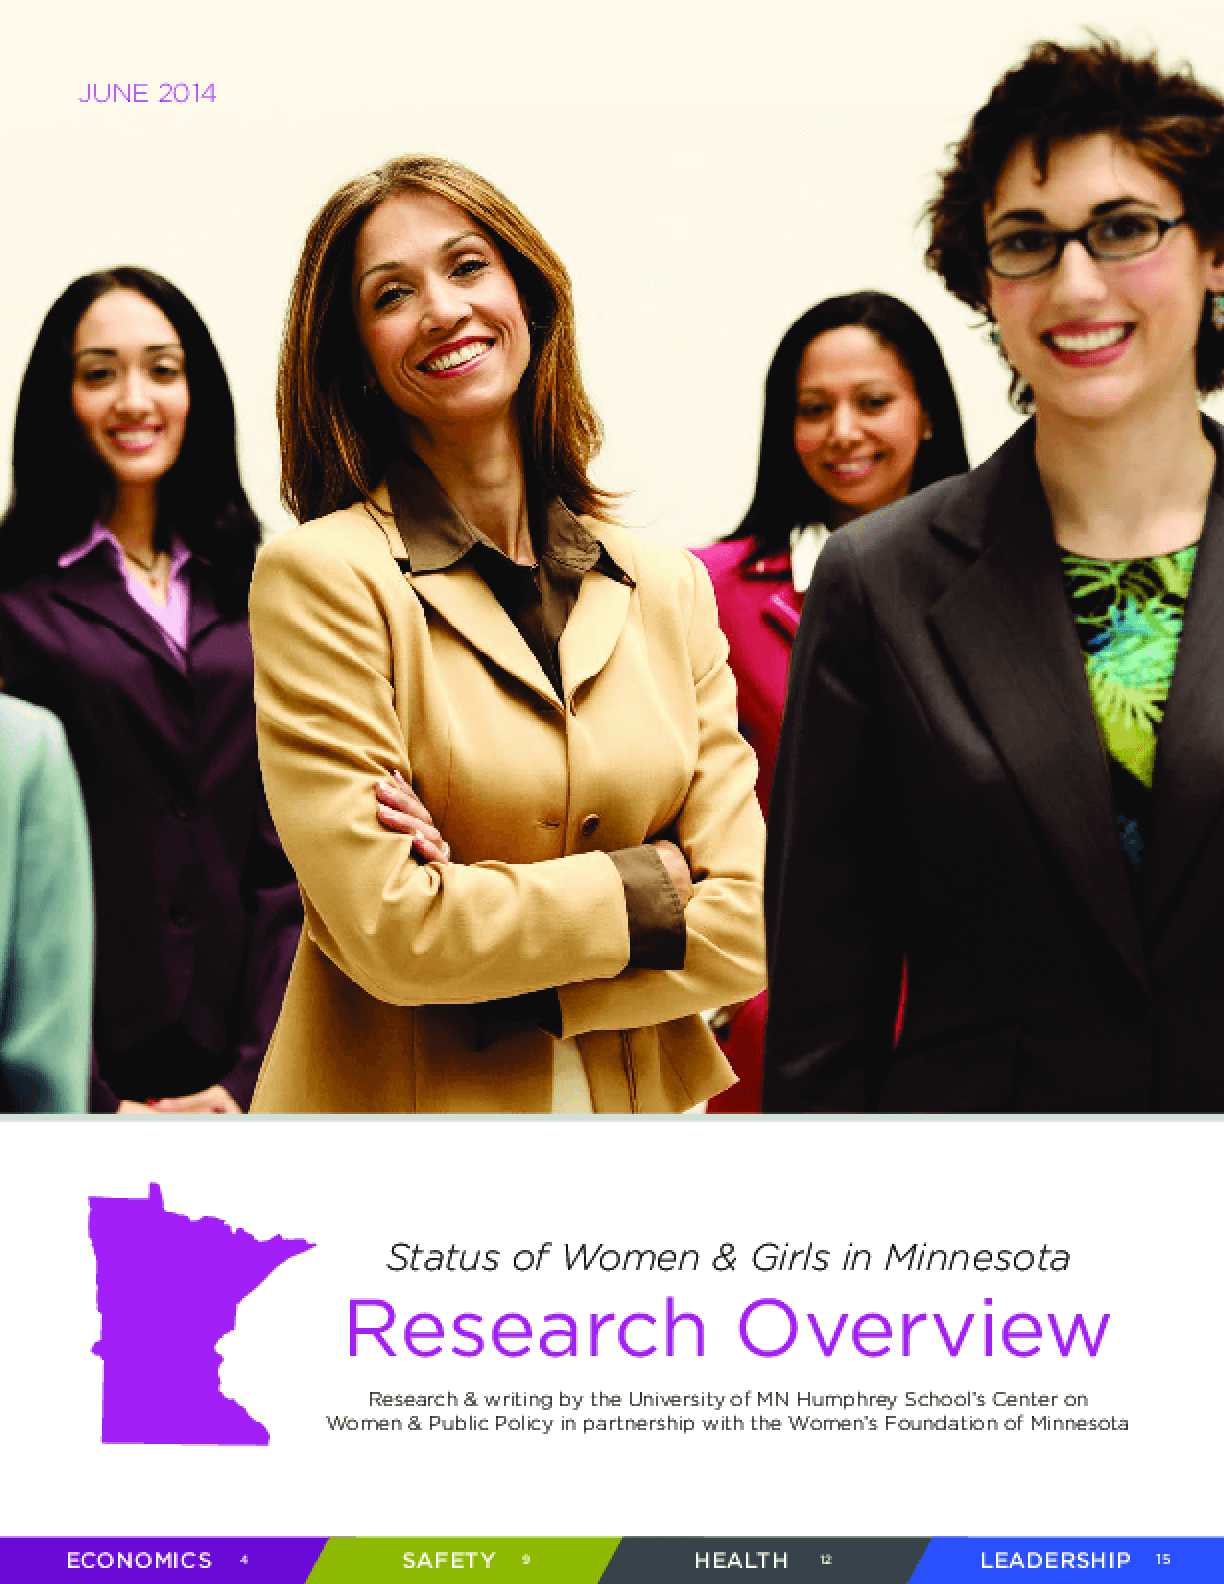 Status of Women & Girls in Minnesota Research Overview 2014